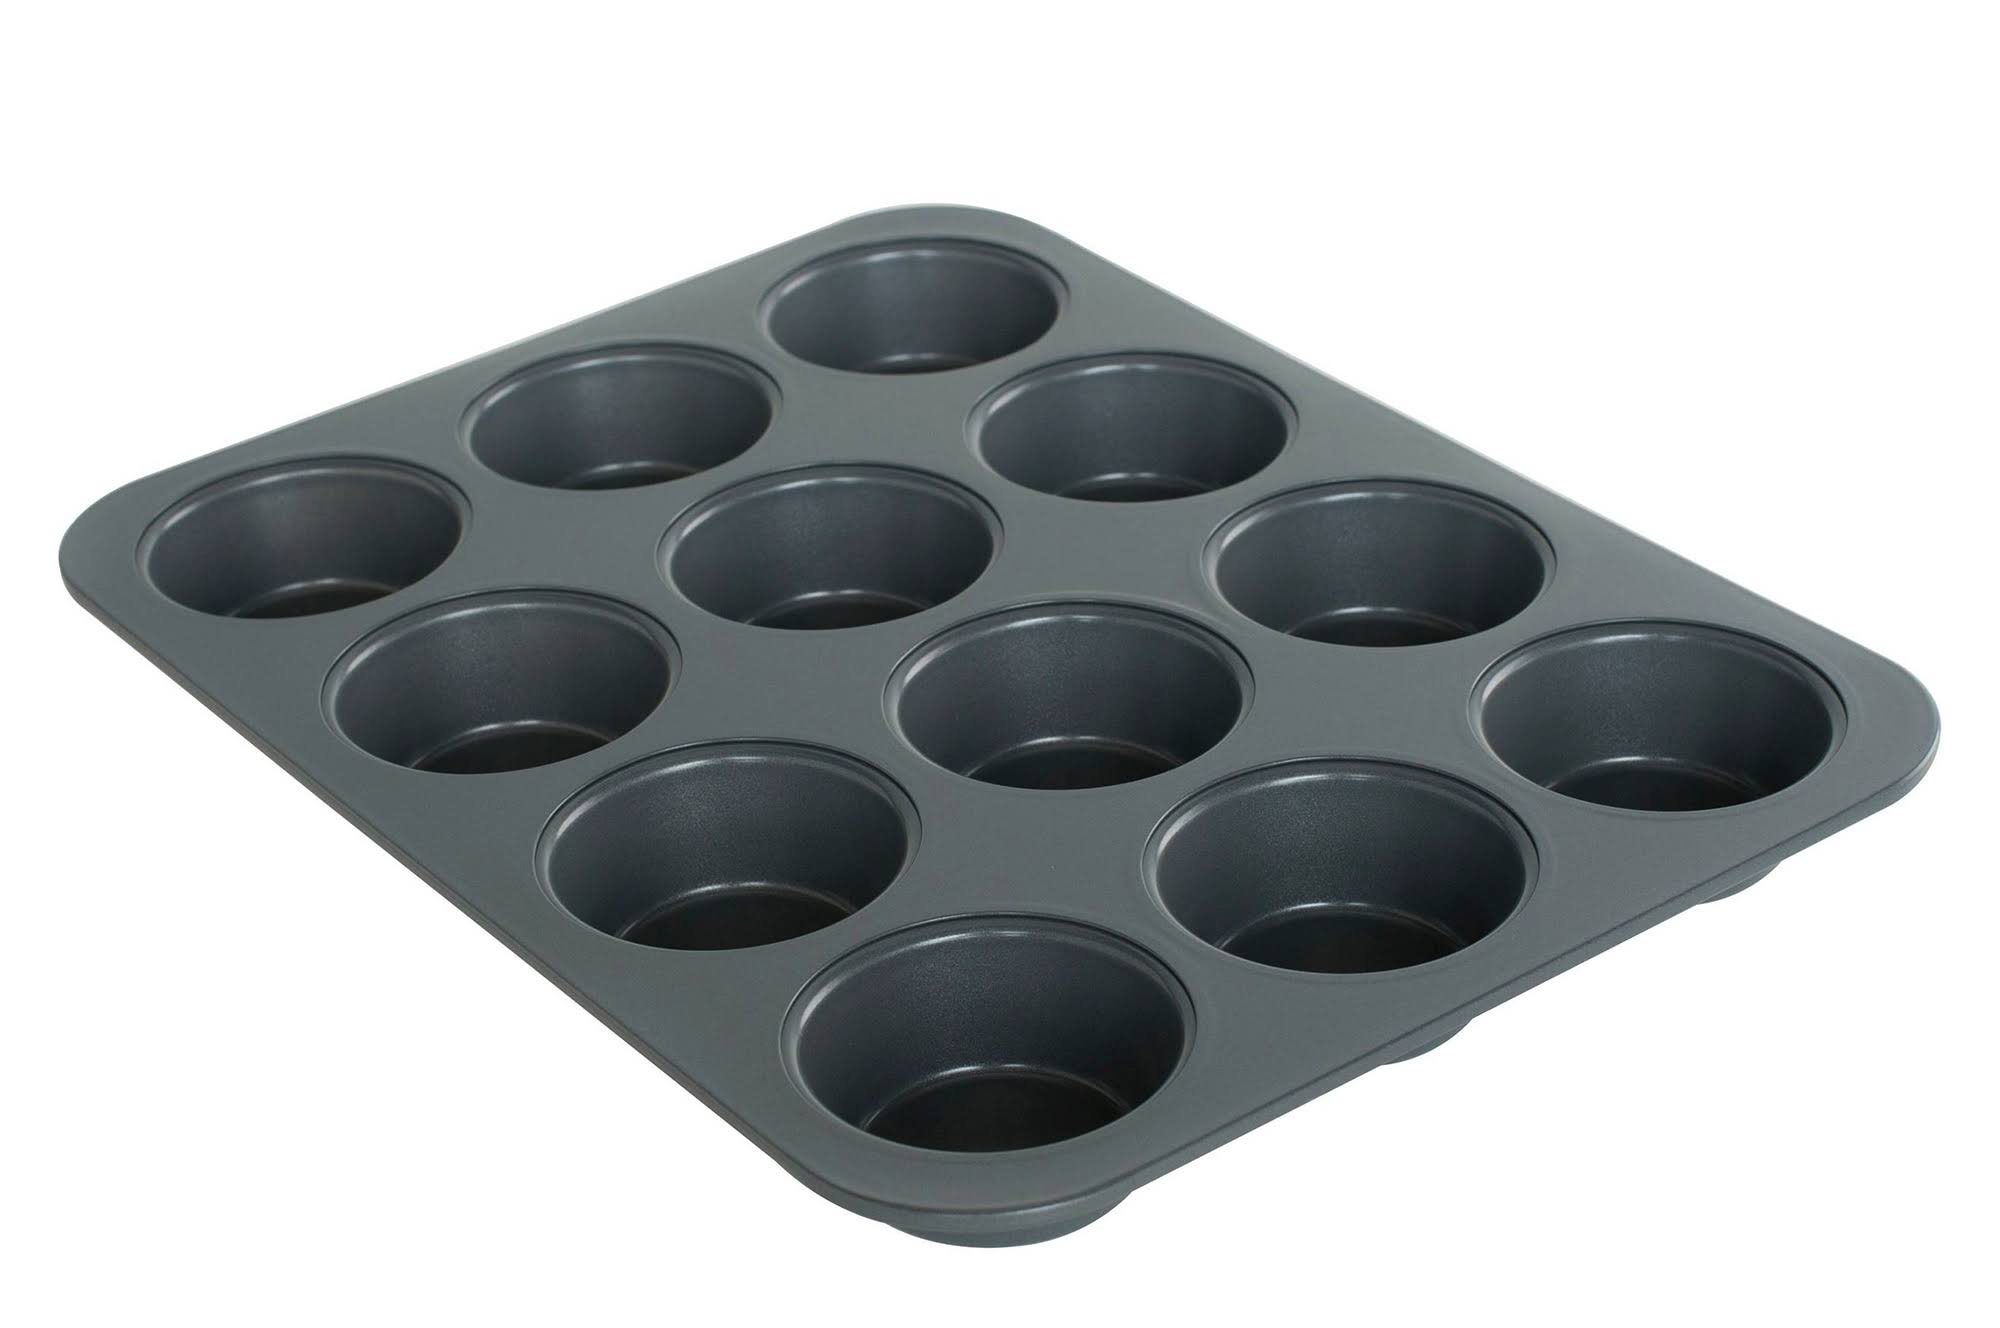 F.N.T. Inc. 12-Cup Nonstick Muffin Pan - Gray-30025